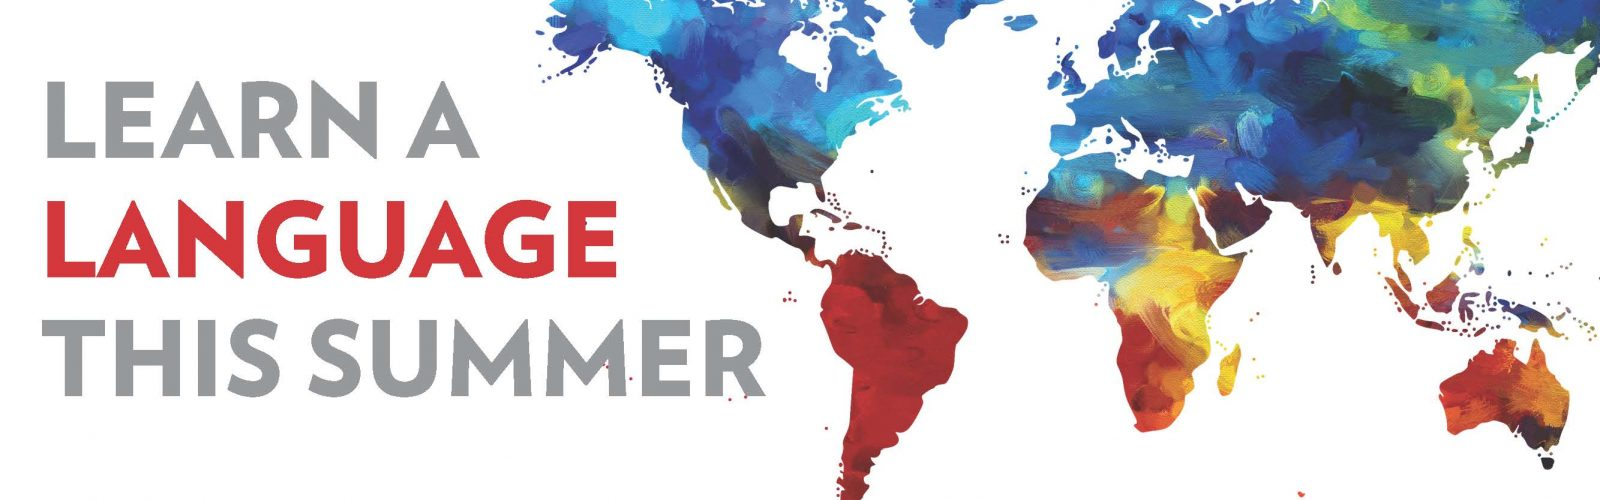 Learn a language this summer text with painted map of the world